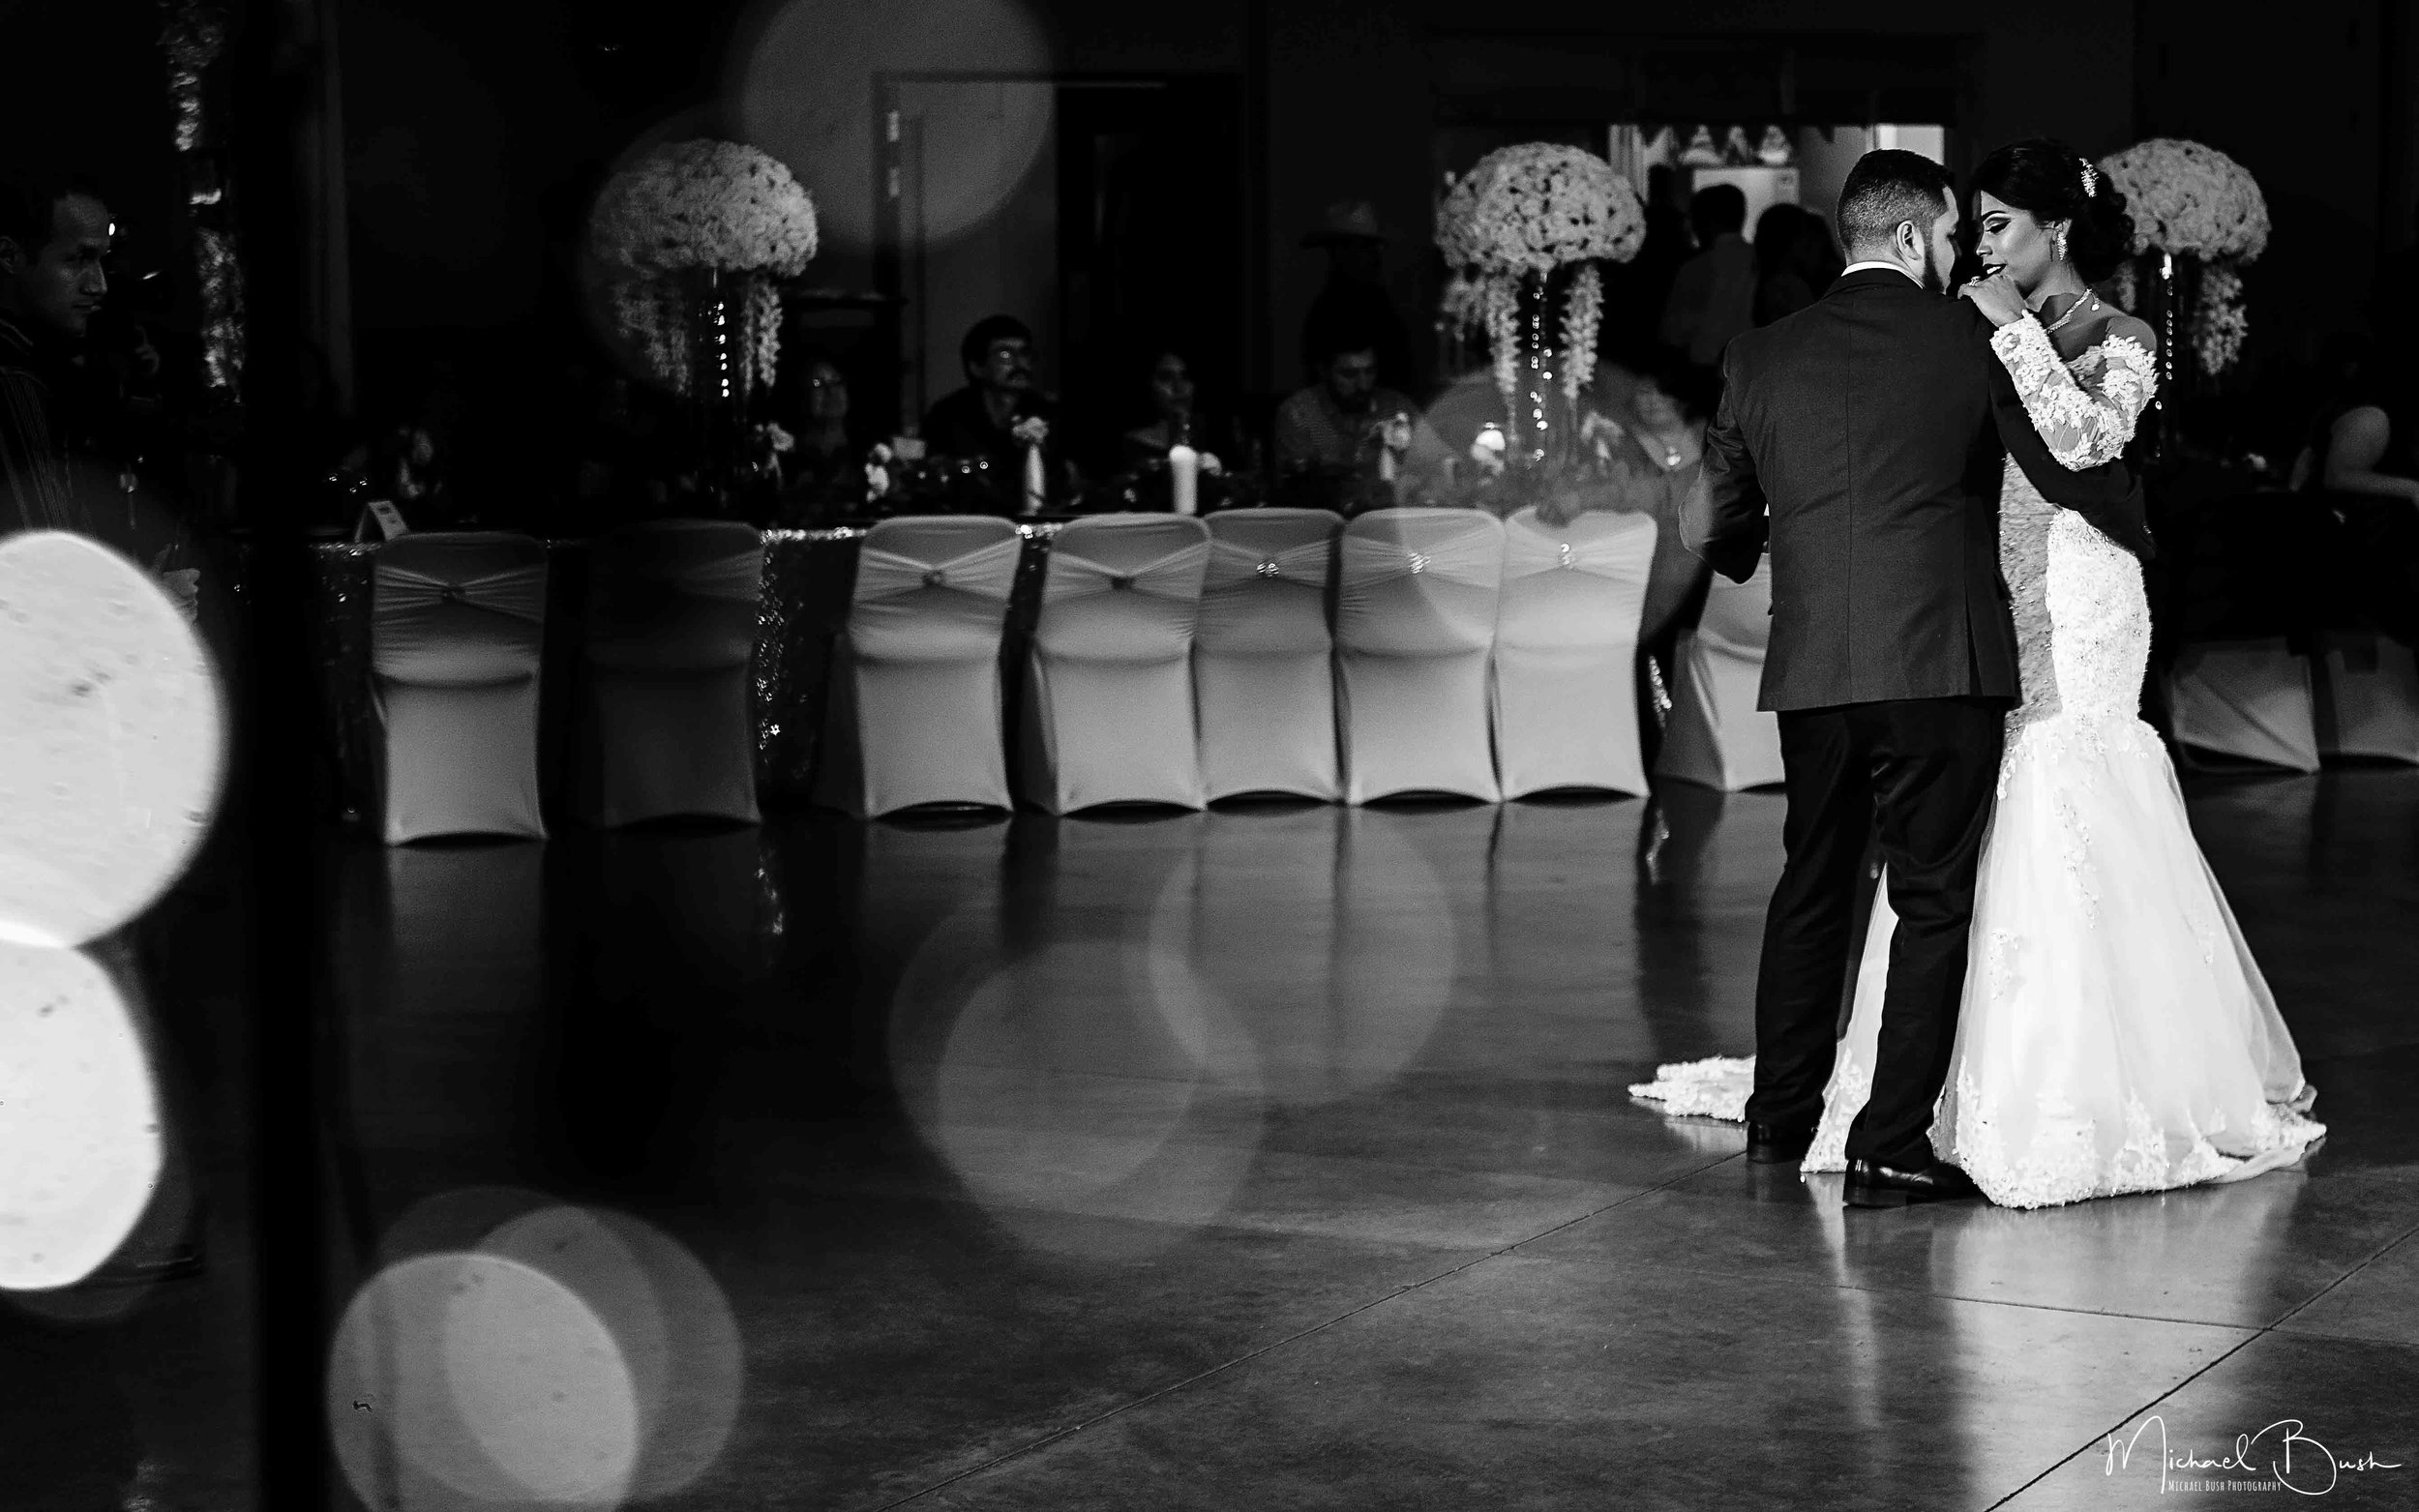 Wedding-Reception-Detials-Fort-Worth-Venue-canon-200-firstdance-B&w.jpg